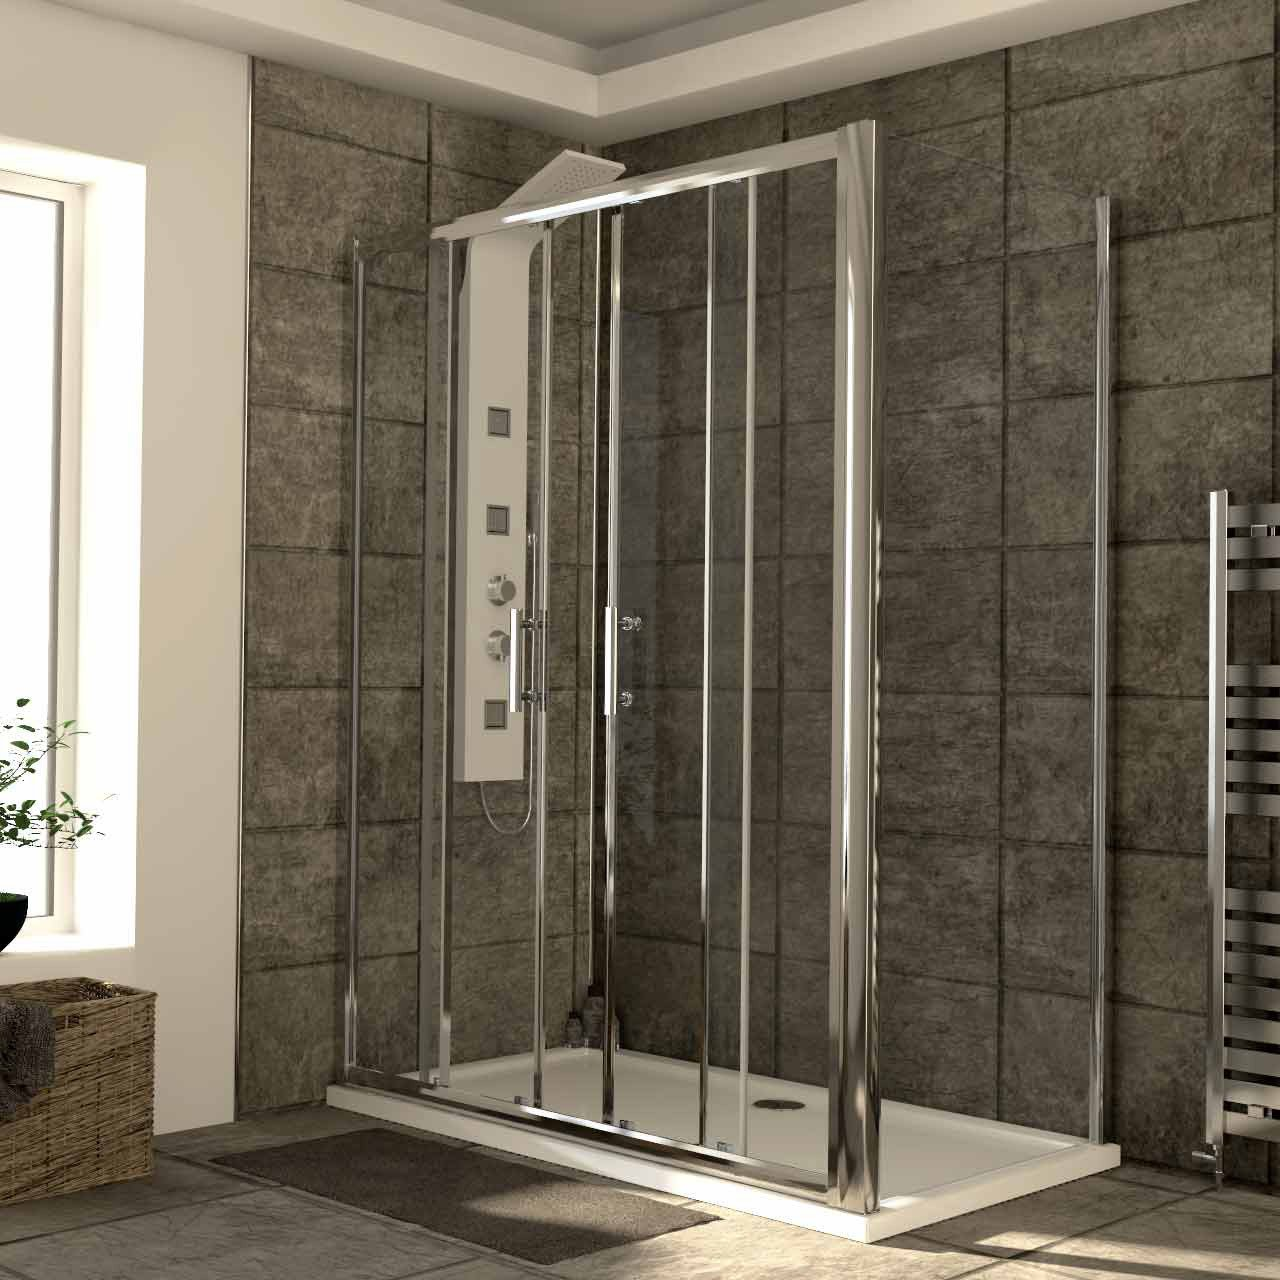 Series 6 1500mm x 800mm Double Sliding Door Shower Enclosure